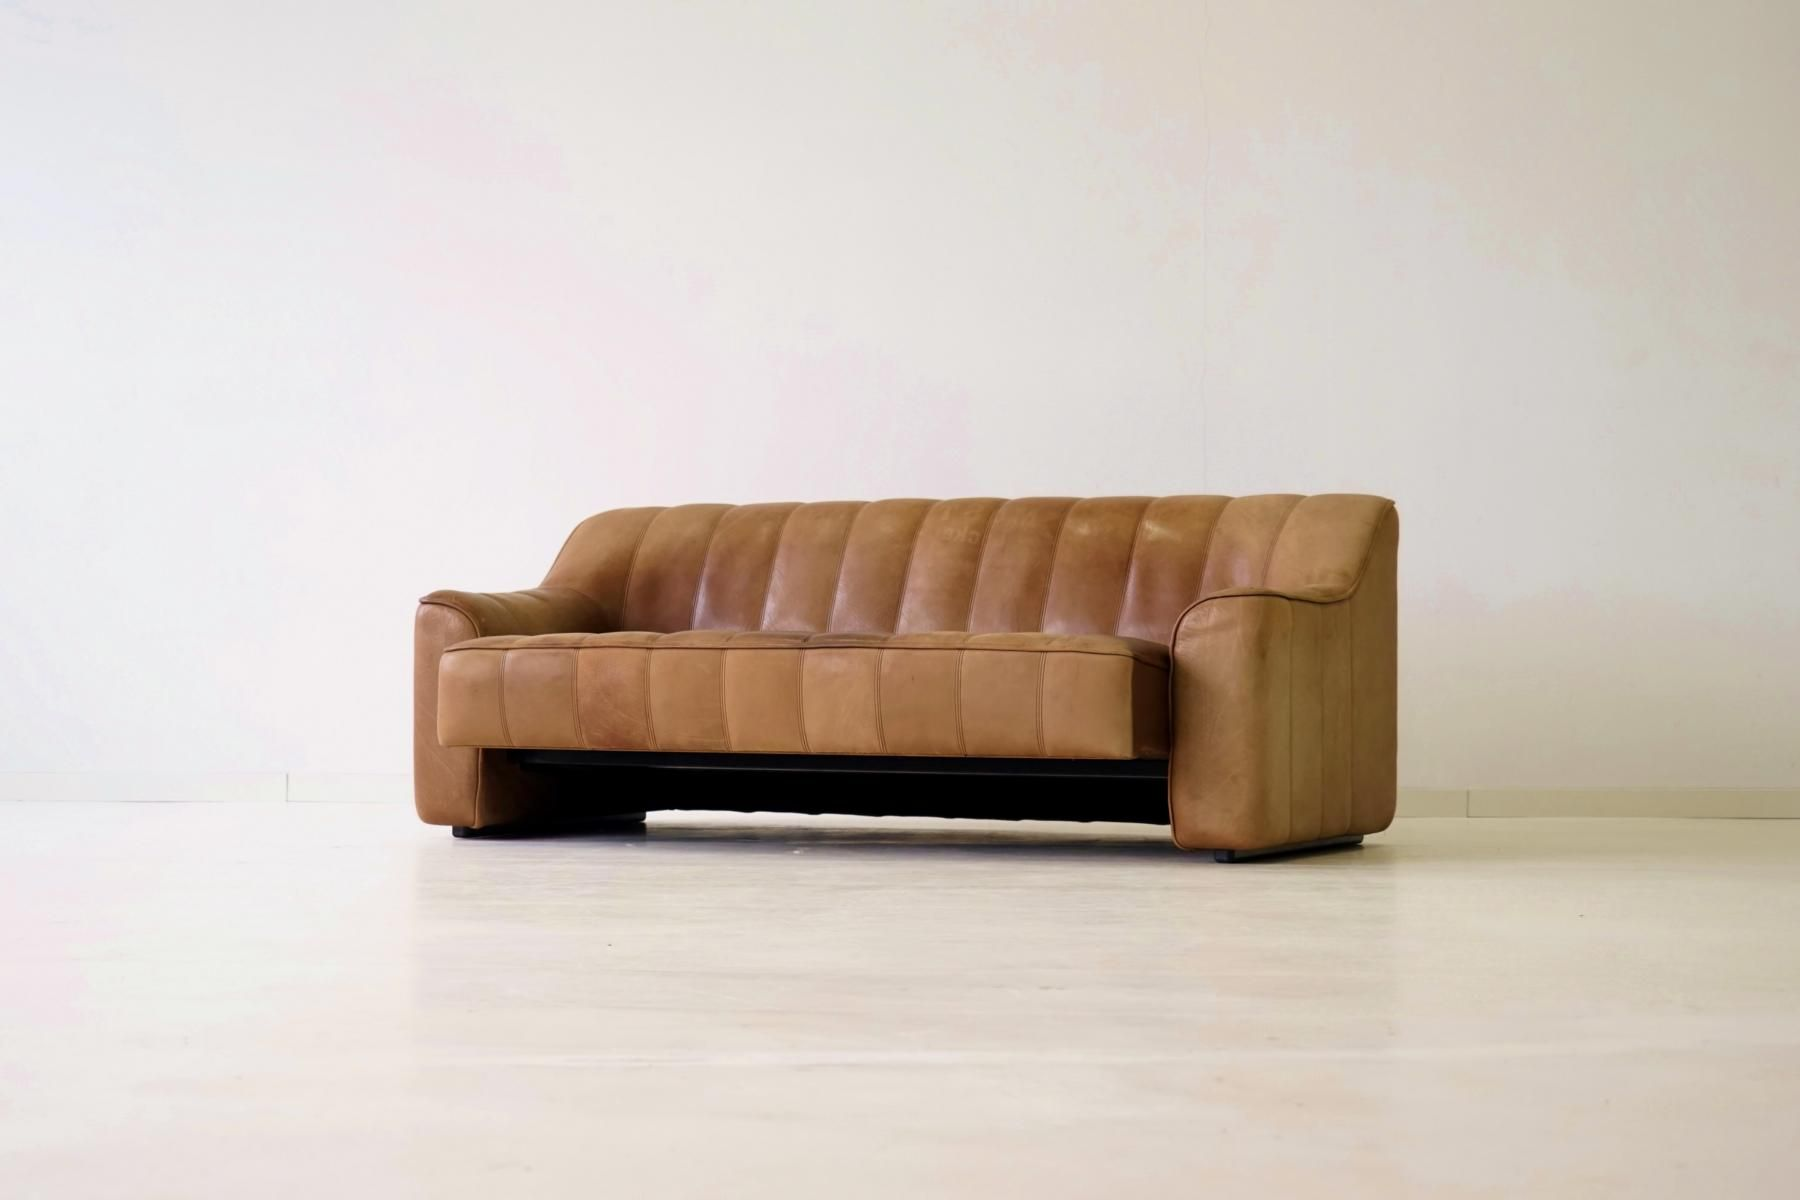 Vintage DS 44 3-Seater Sofa from de Sede, 1970s for sale at Pamono